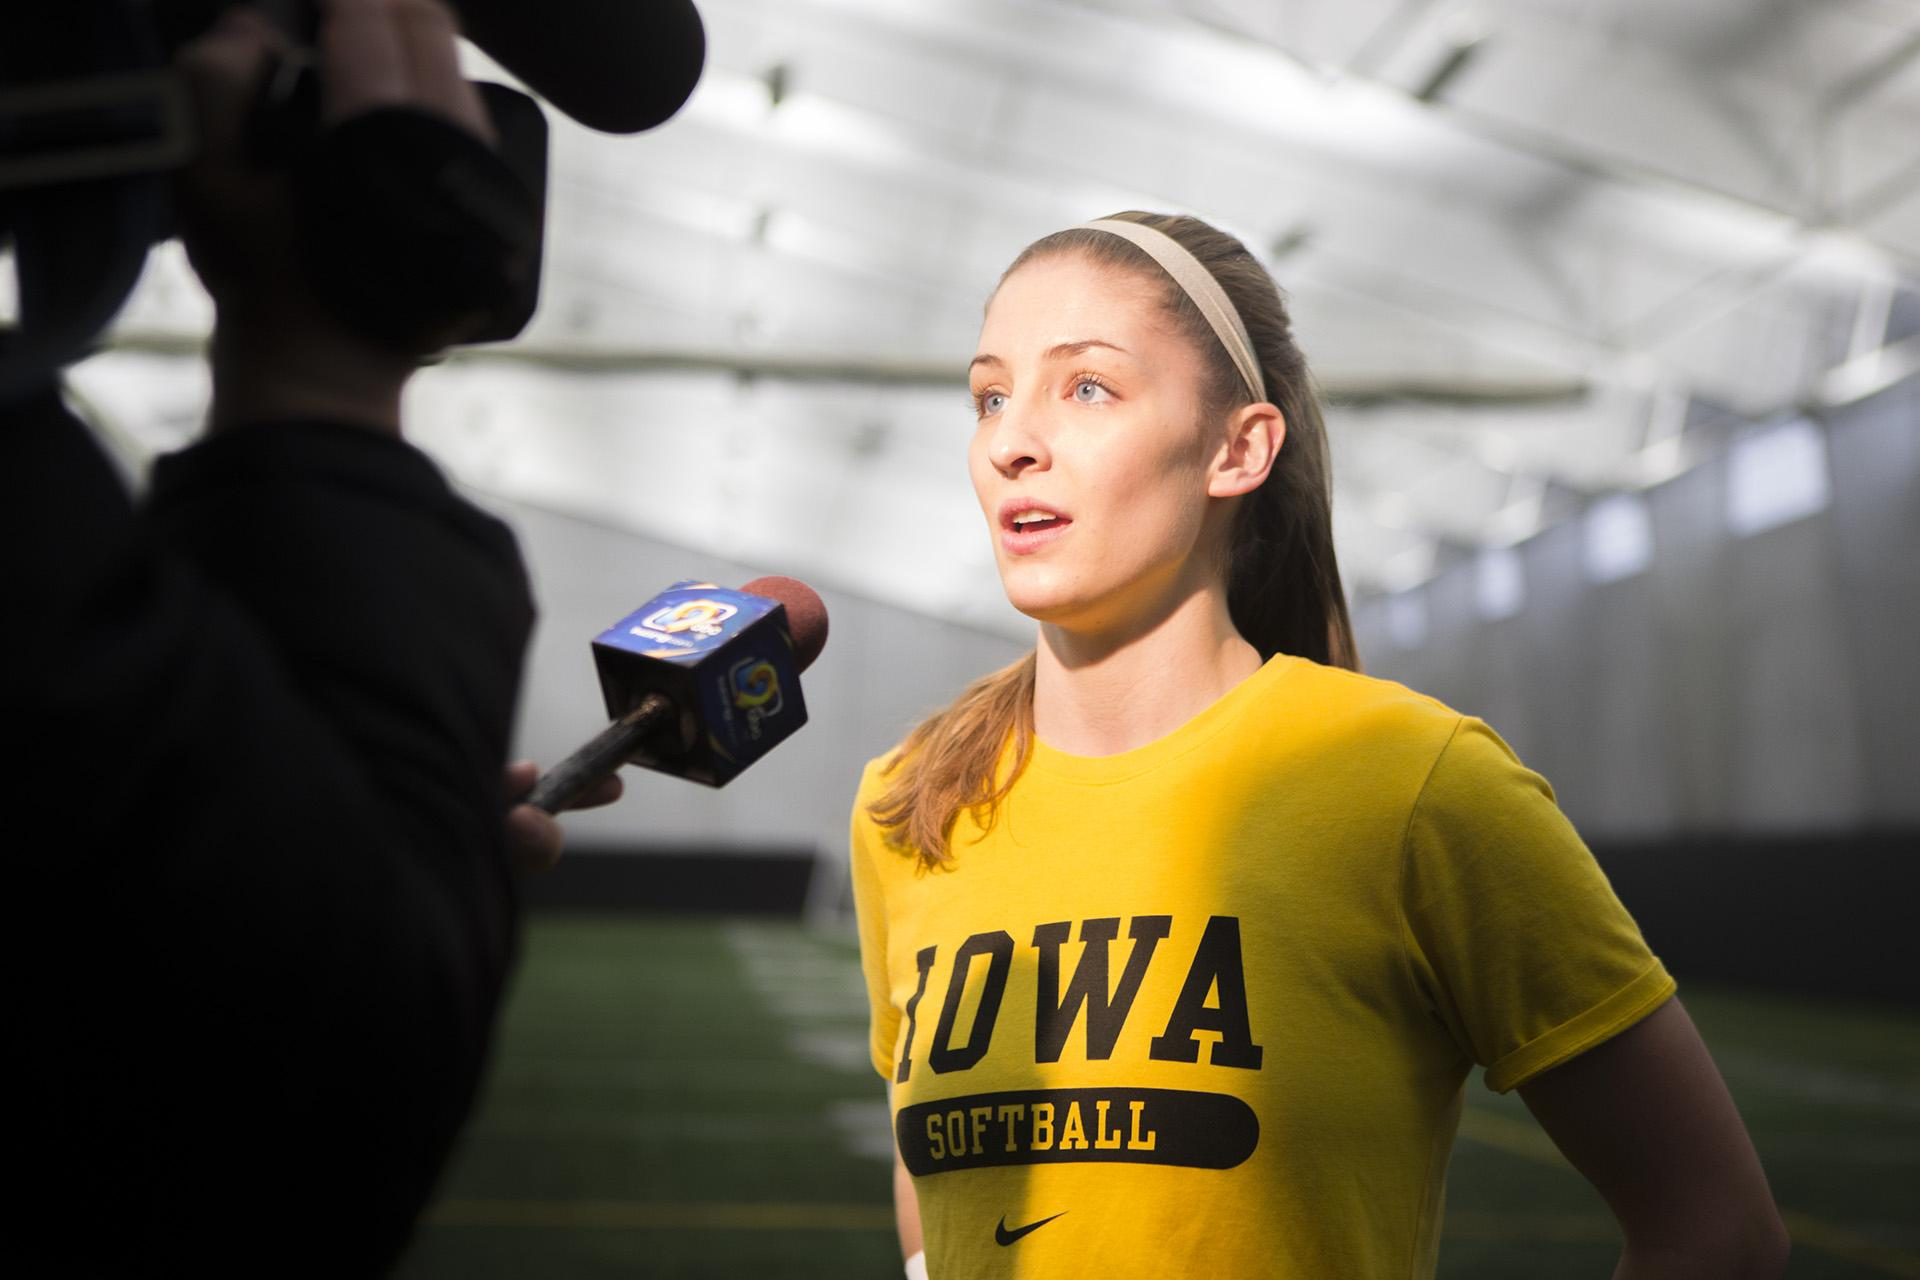 Iowa pitcher Allison Doocy speaks to the media during softball media day at the Hawkeye Tennis and Recreation Complex on Thursday, Feb. 1, 2018. The Hawkeyes begin the regular season on Feb. 9 against UIC, in Lafayette, LA. (Lily Smith/The Daily Iowan)